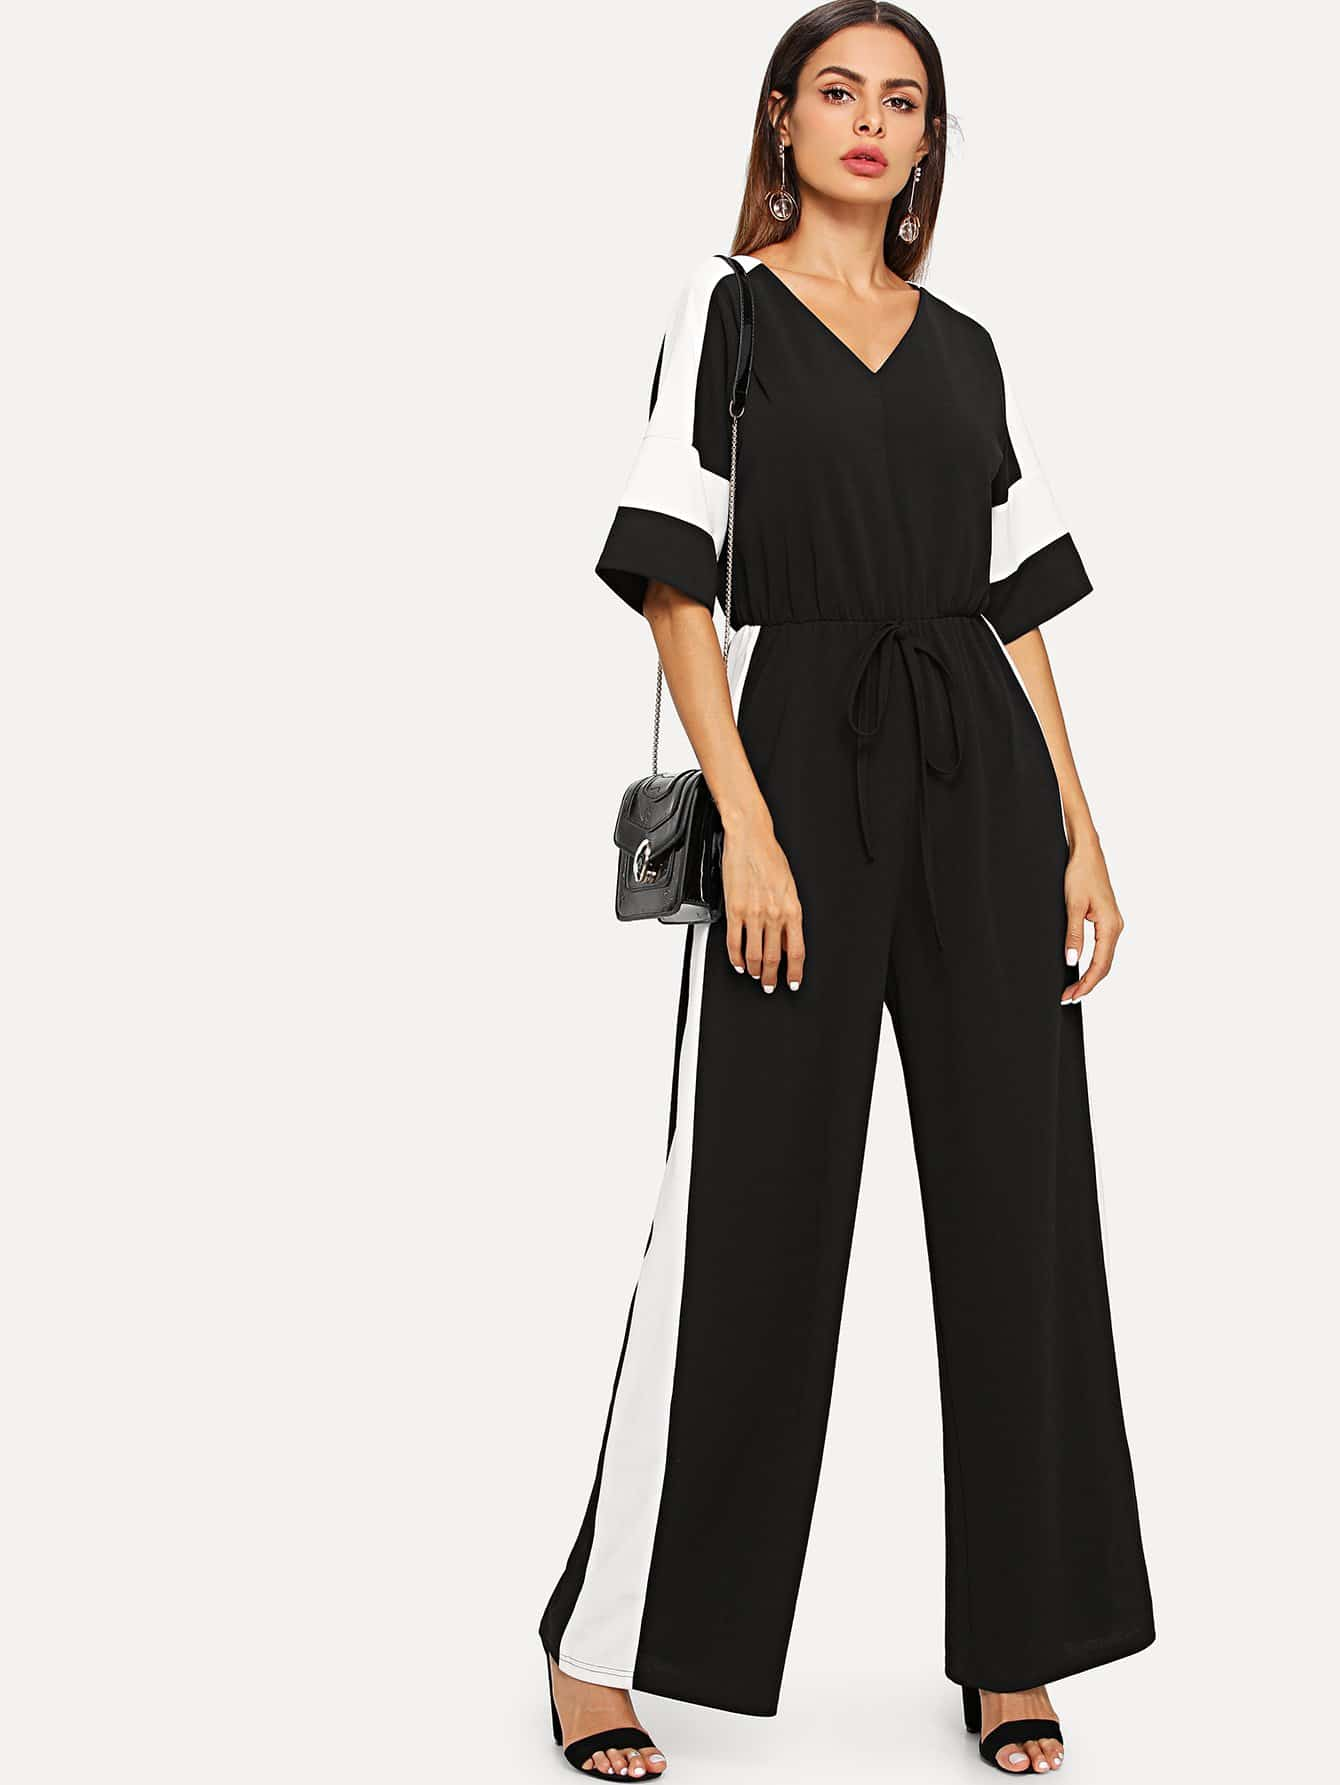 Knot V Cut Back Drawstring Waist Colorblock Jumpsuit mixed print colorblock knot back halter dress